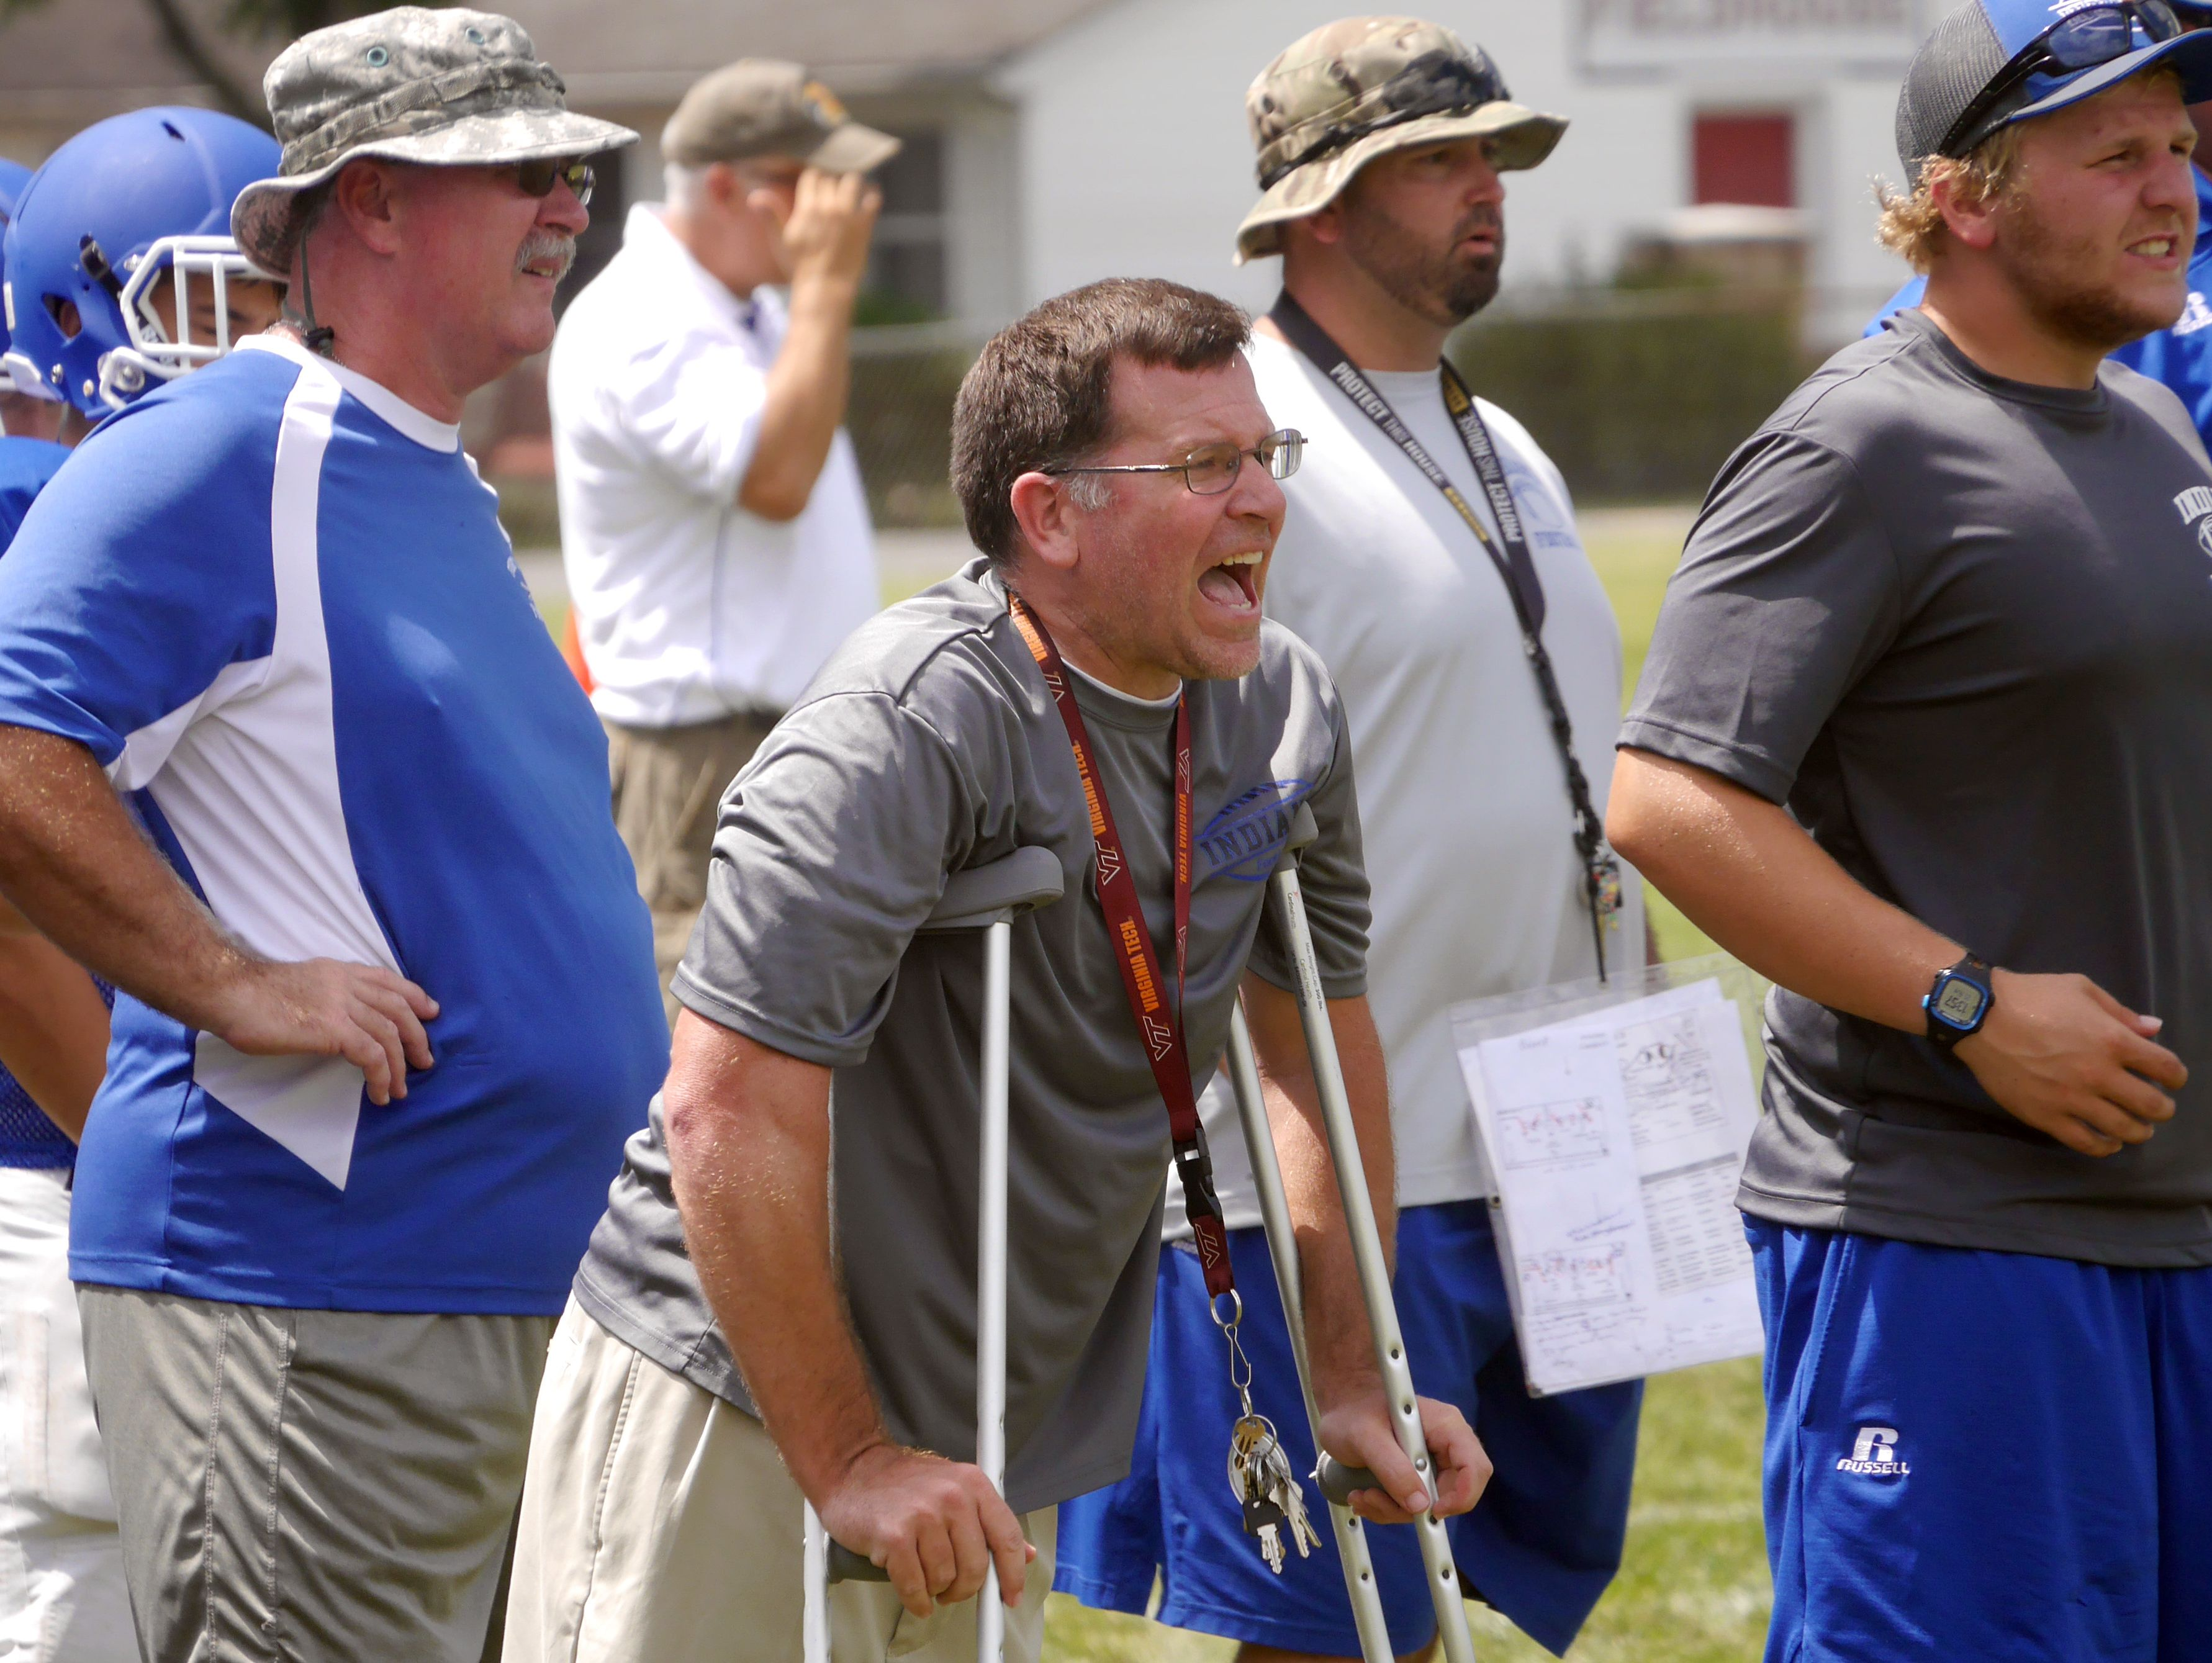 Fort Defiance head coach Dan Rolfe calls out instructions during their scrimmage against James River at the Riverheads High School 2016 football jamboree on Aug. 20, 2016.